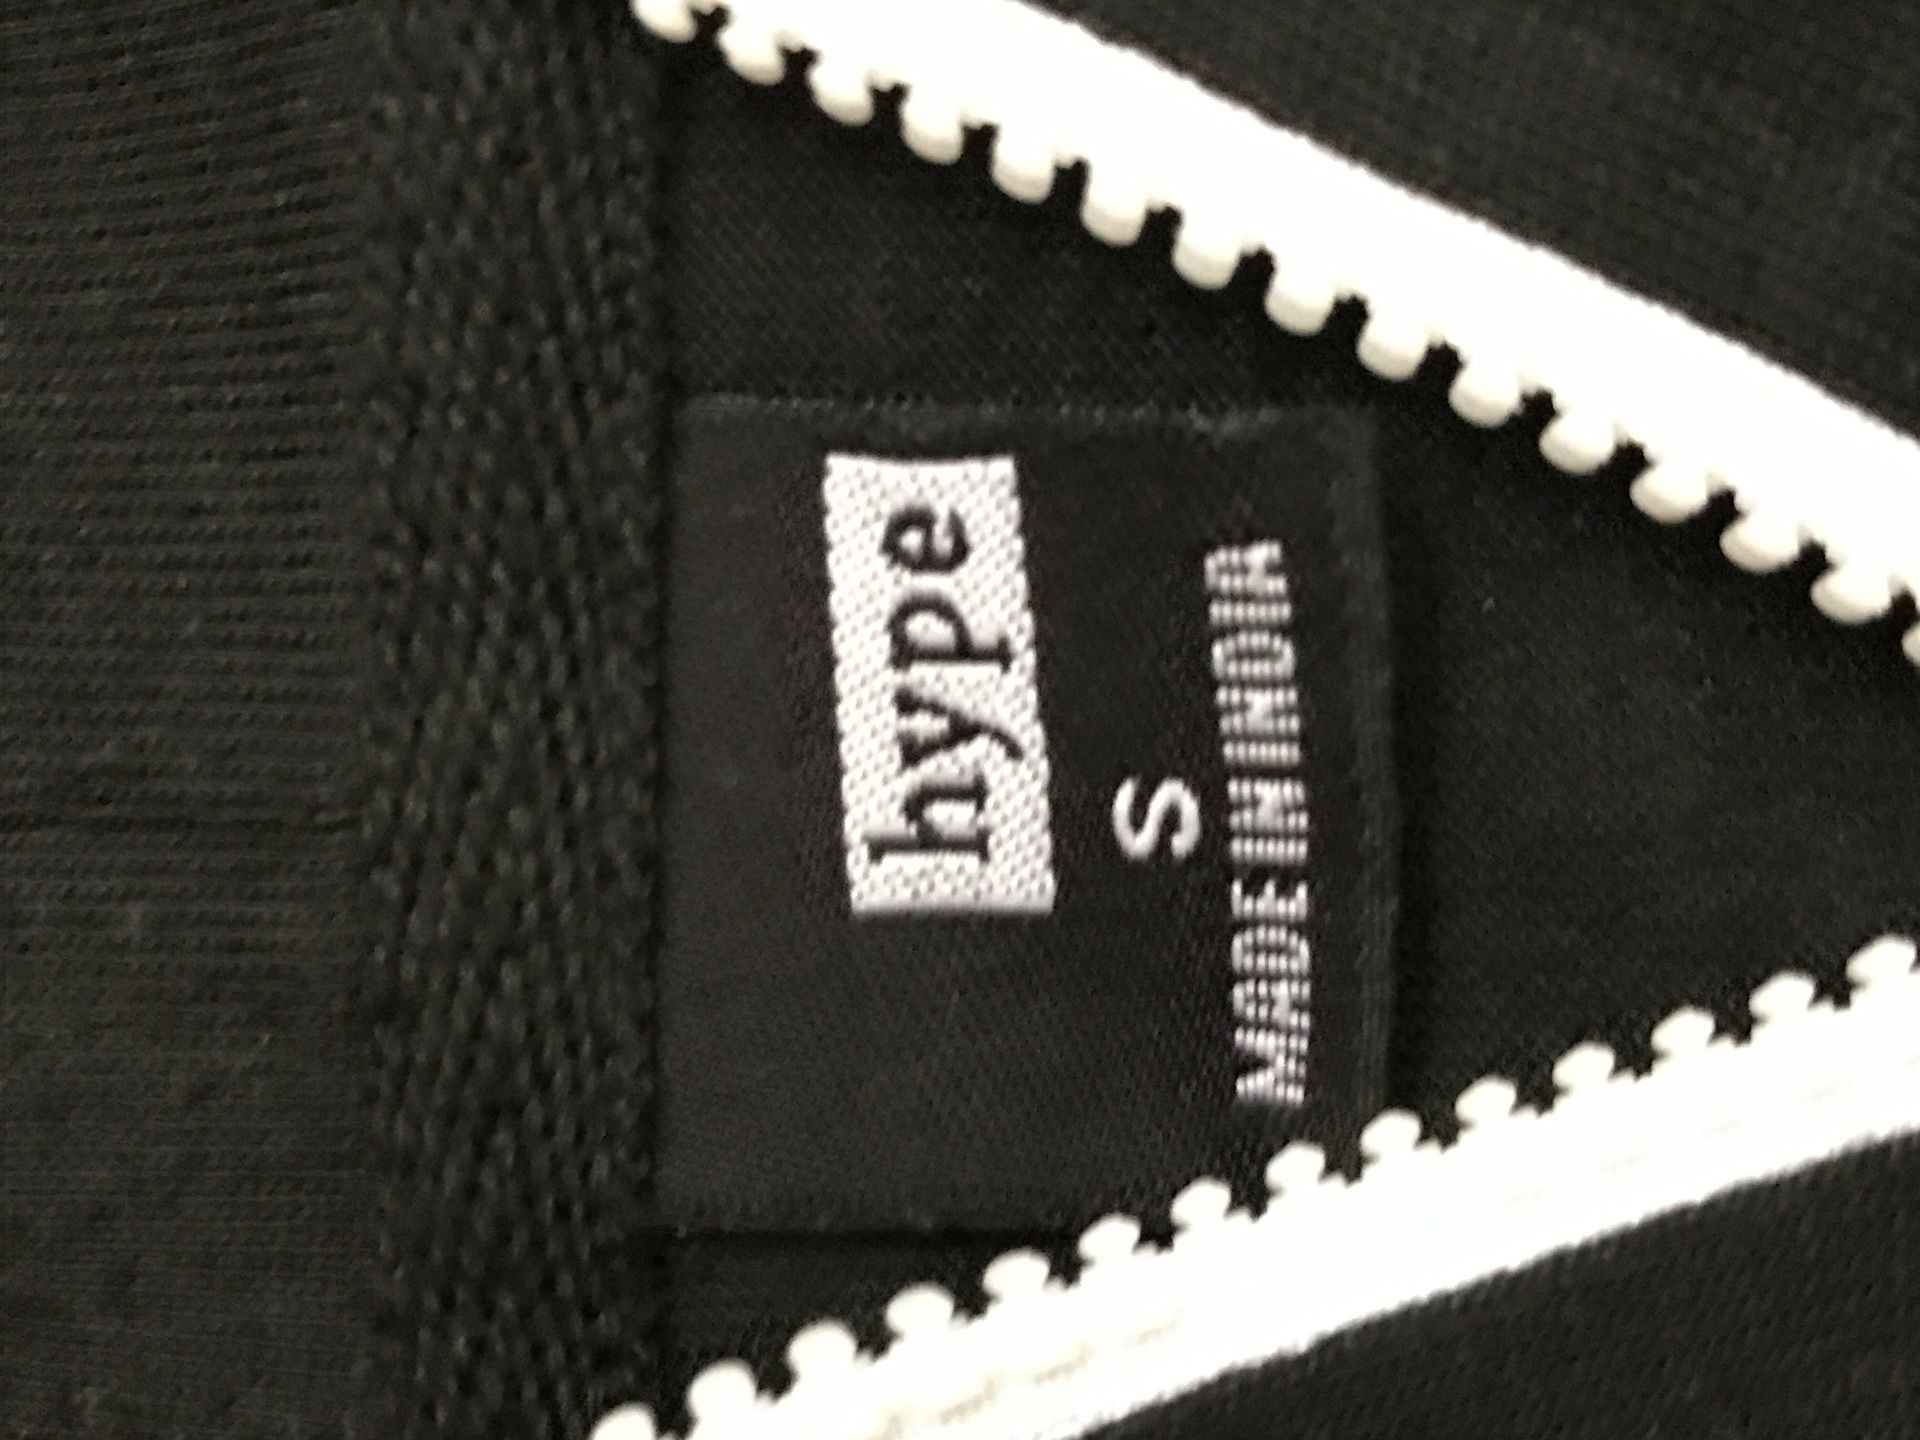 3 Hype (small) sweaters (1 zip up)